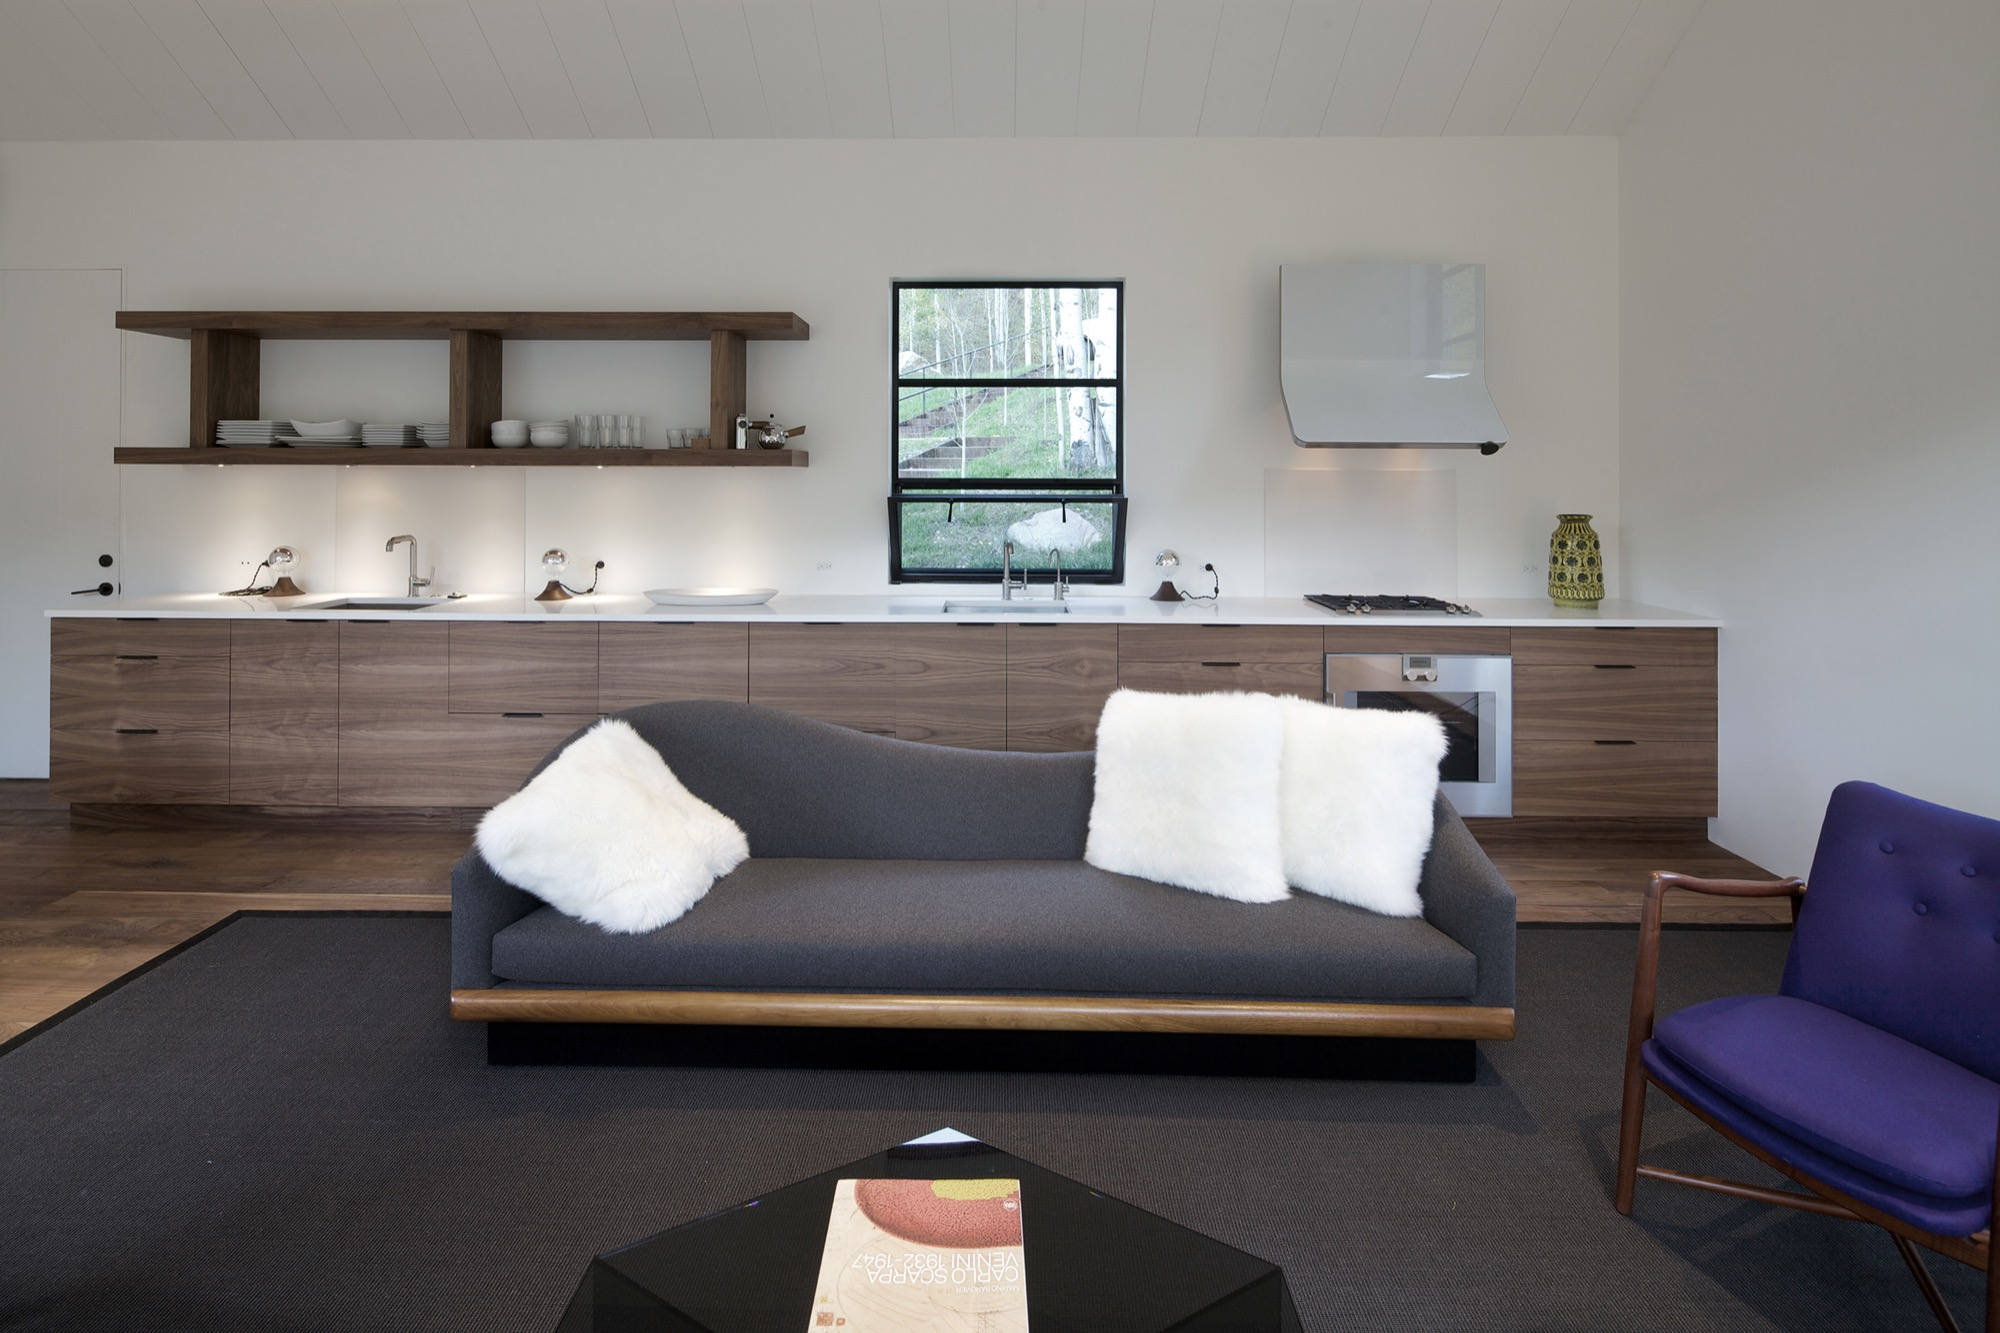 The living area includes a small kitchen so guests can be self-sufficient during their stay / Photo by Greg Watts